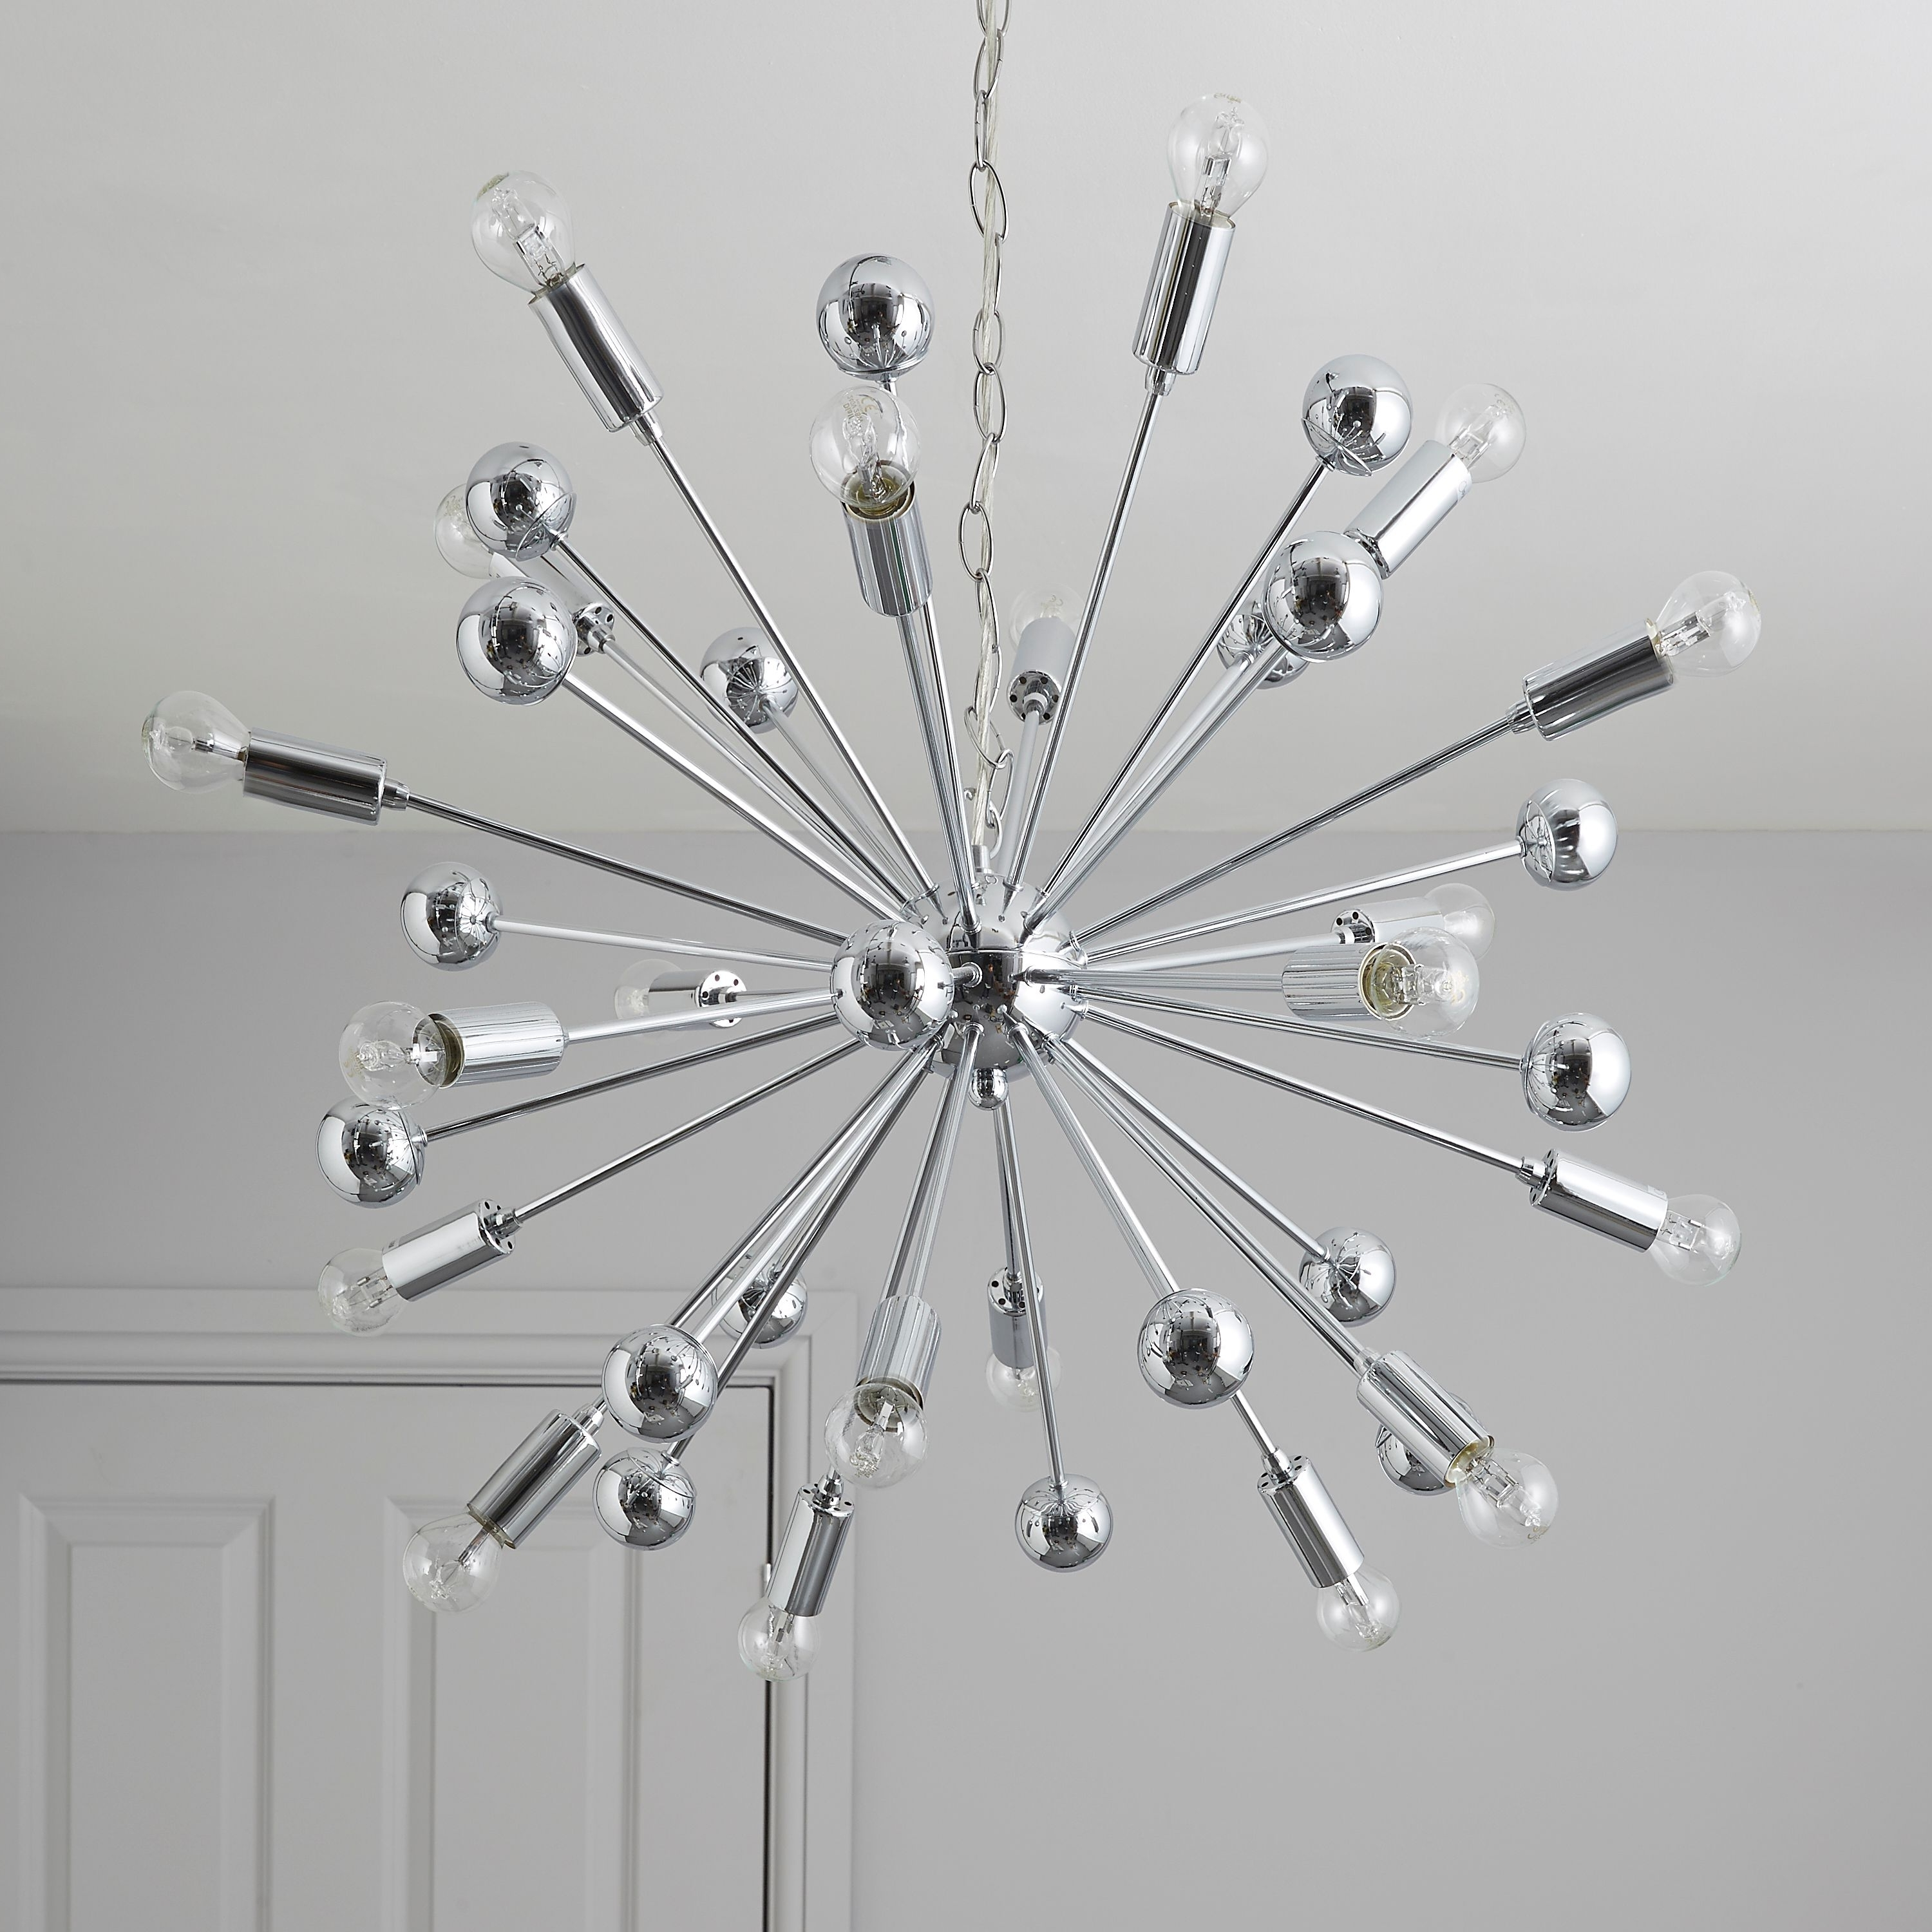 Ceiling Pertaining To Well Liked Chrome Sputnik Chandeliers (View 20 of 20)